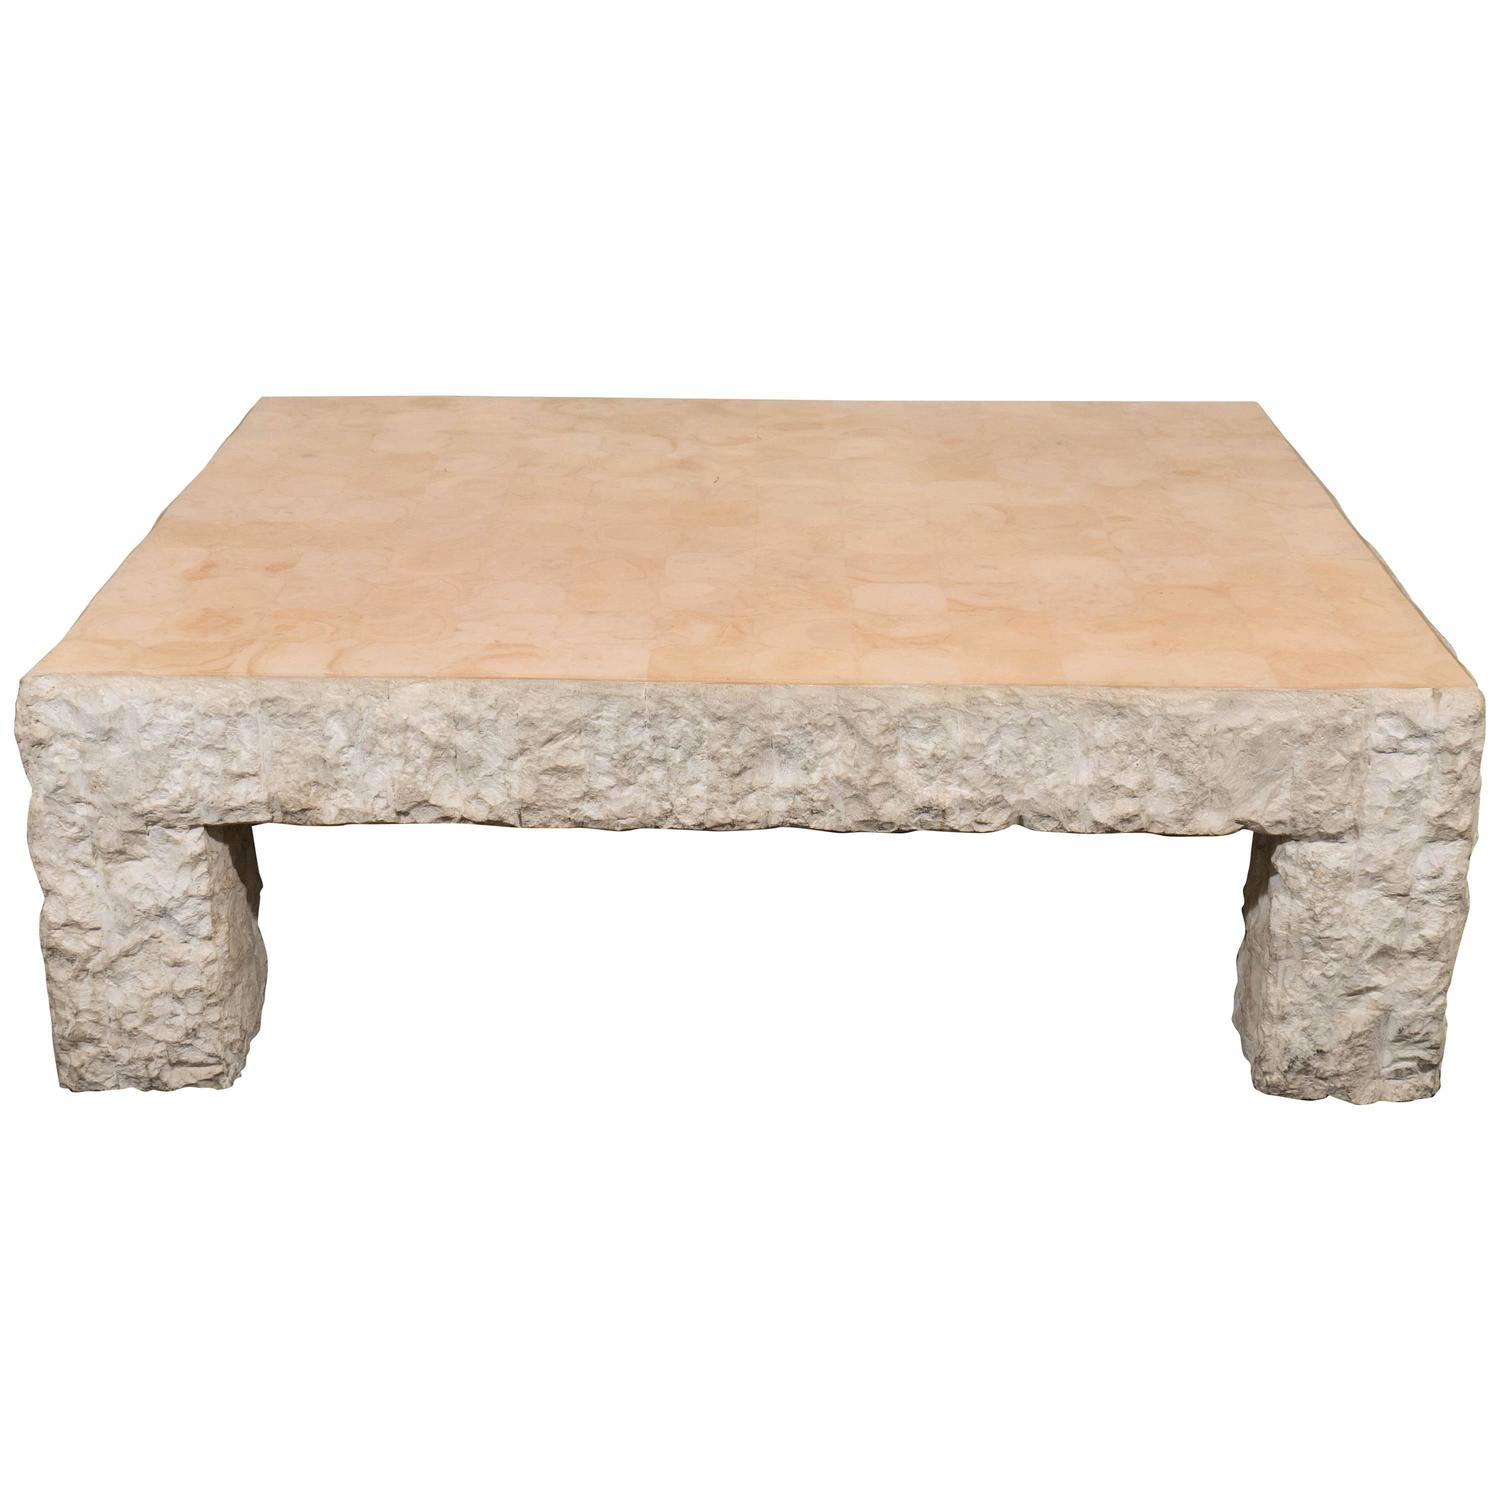 Merveilleux Maitland Smith Rough Edge Travertine Coffee Table At 1stdibs